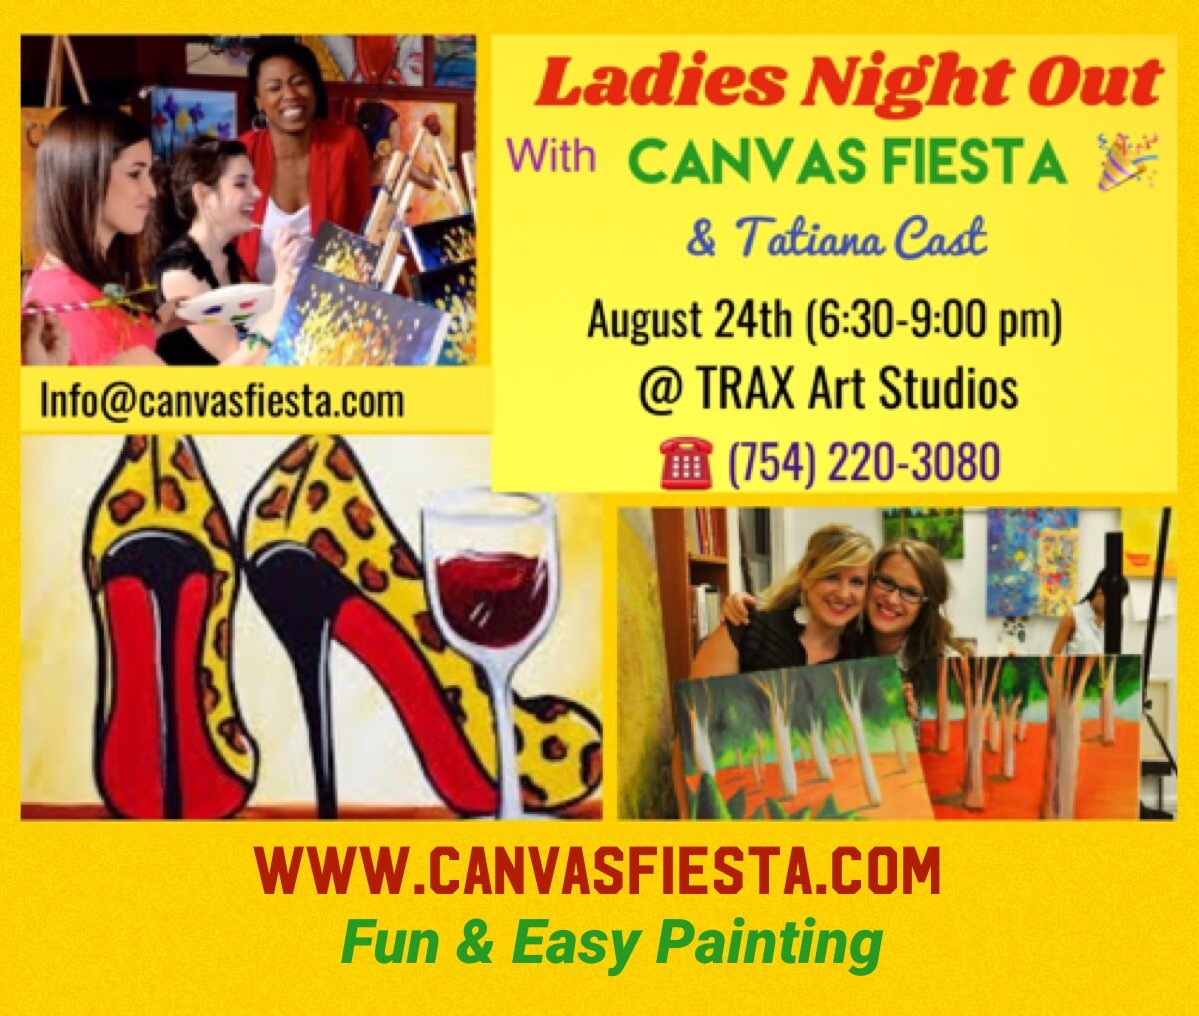 LADIES NIGHT OUT PAINTING WITH CANVAS FIESTA